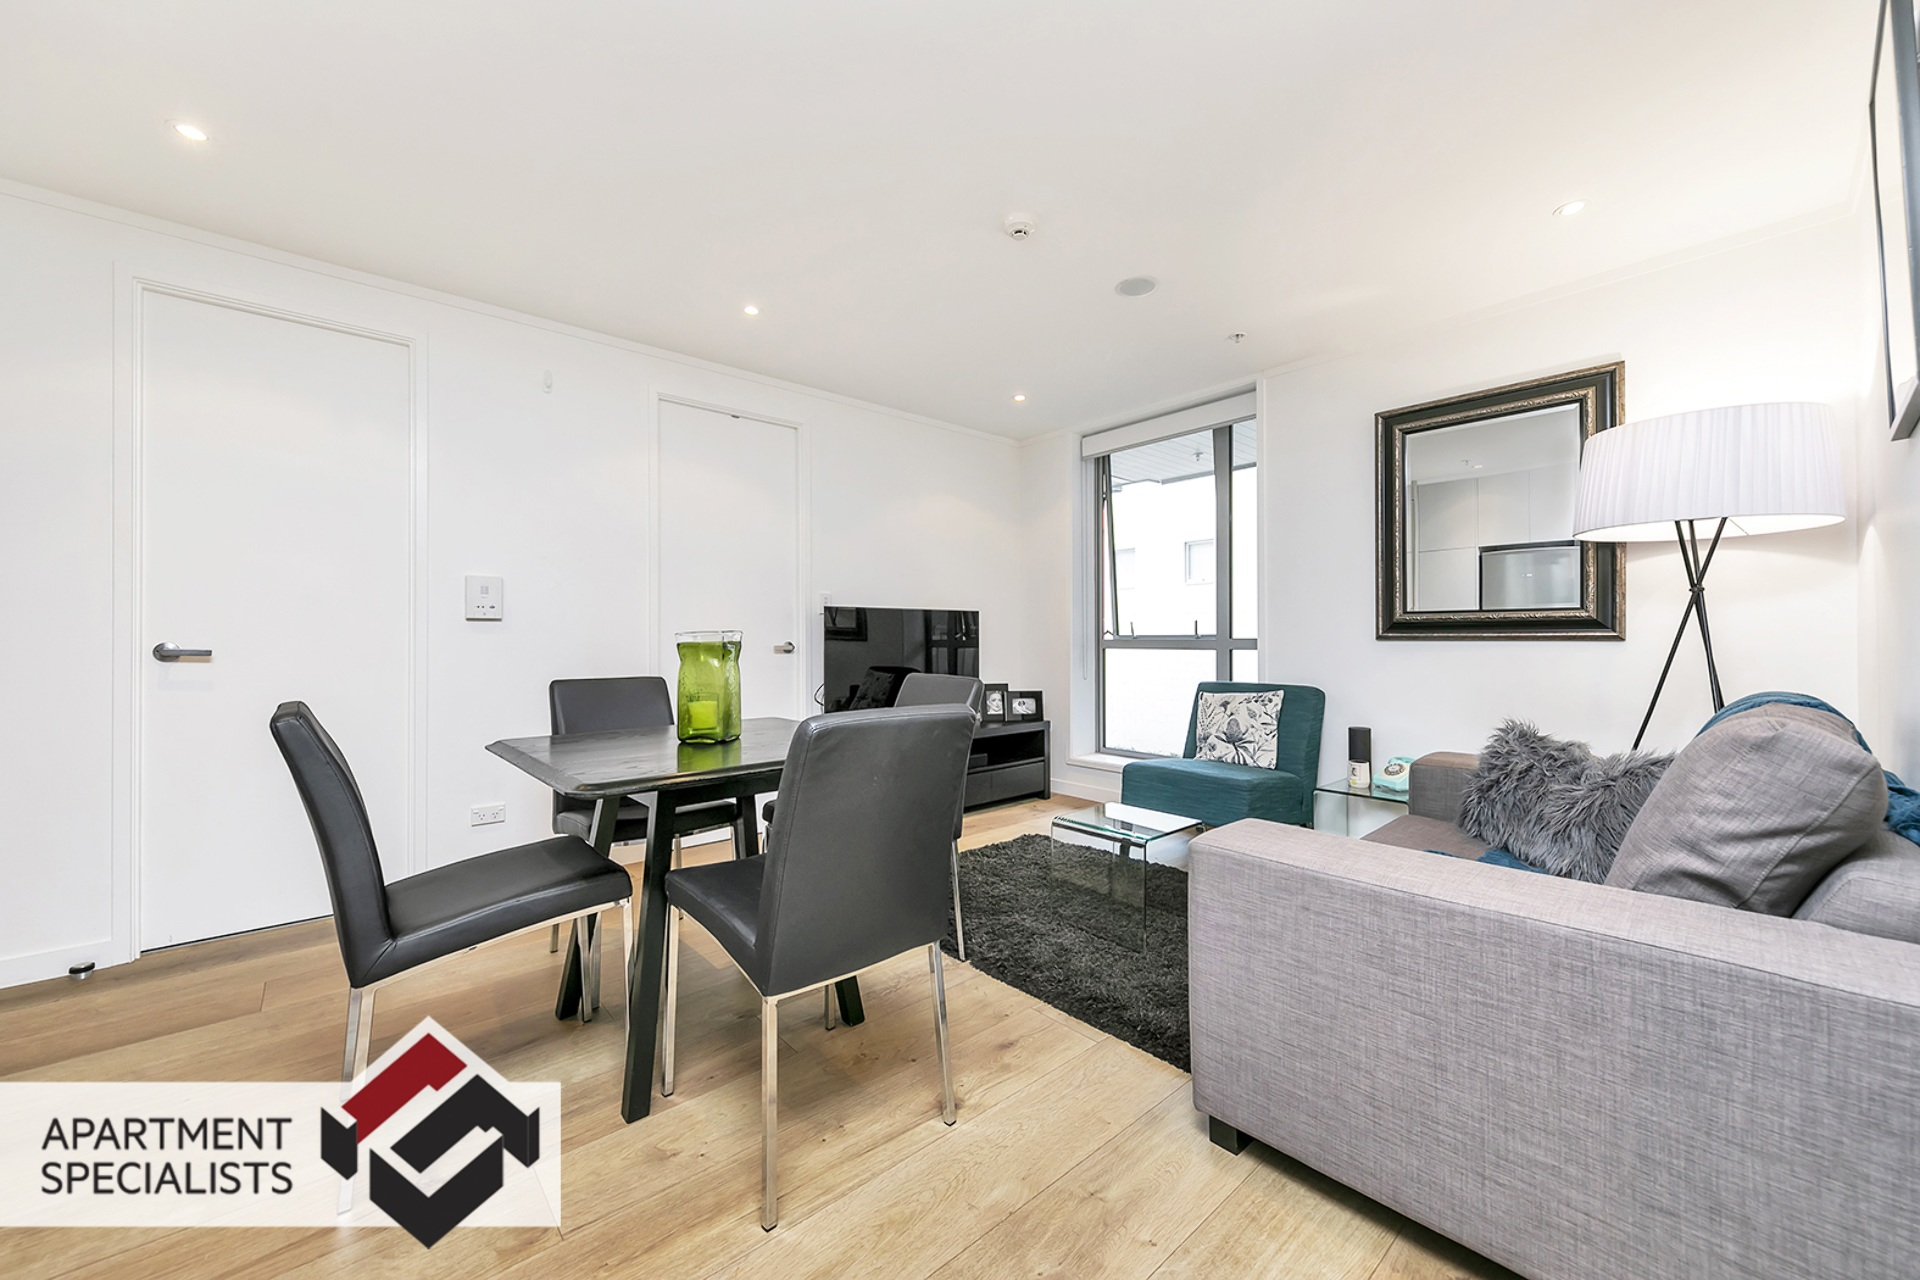 2 | 27 Union Street, City Centre | Apartment Specialists